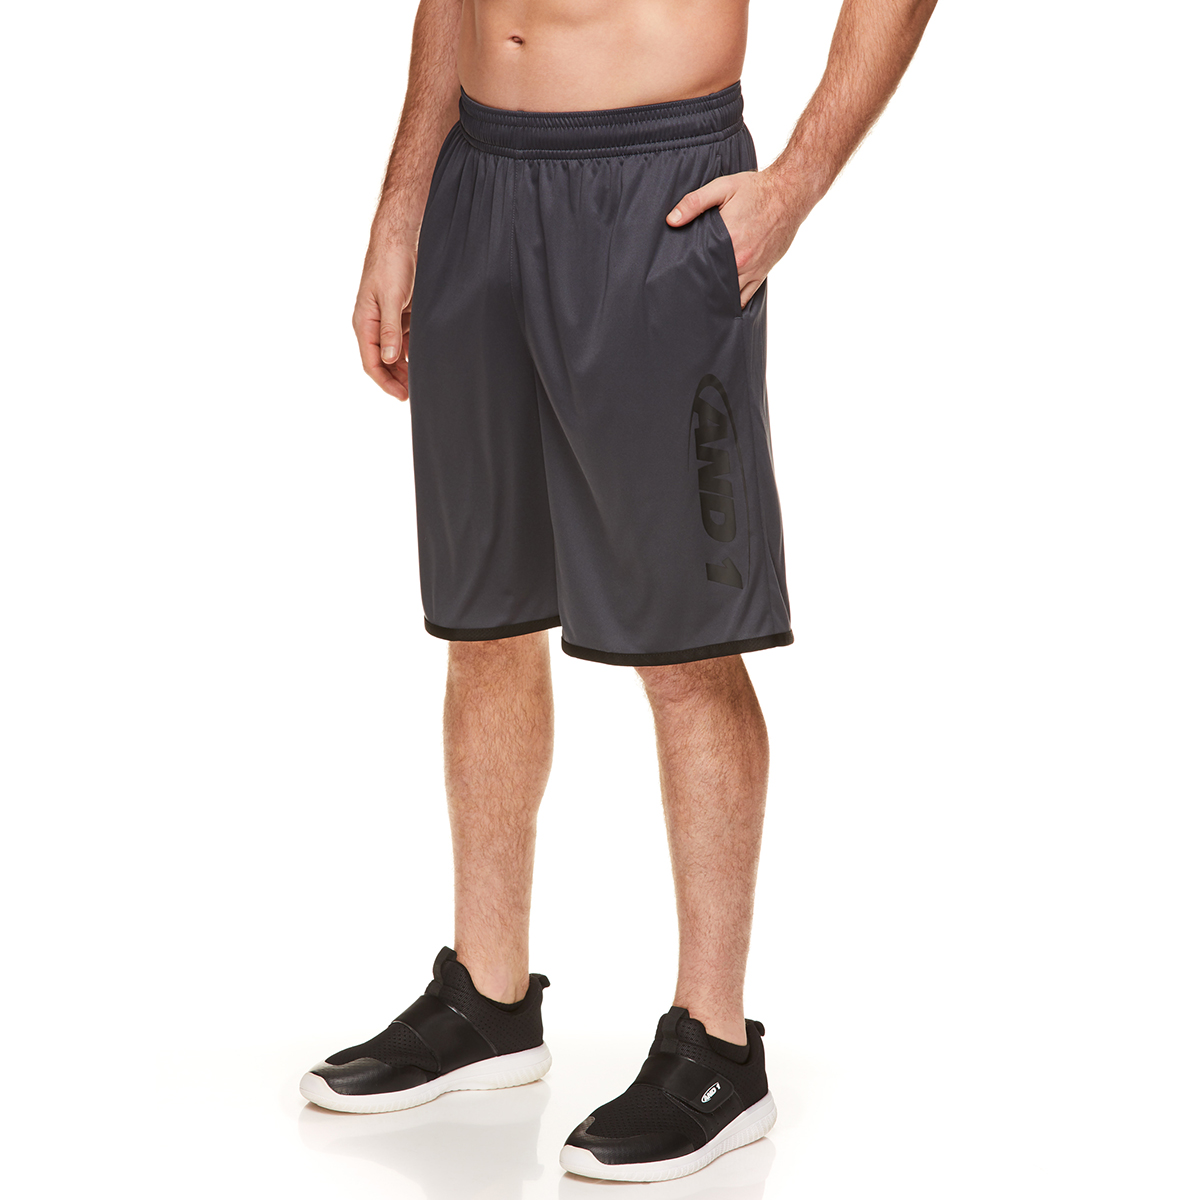 And1 Men's New Generation Classic Short - Black, S